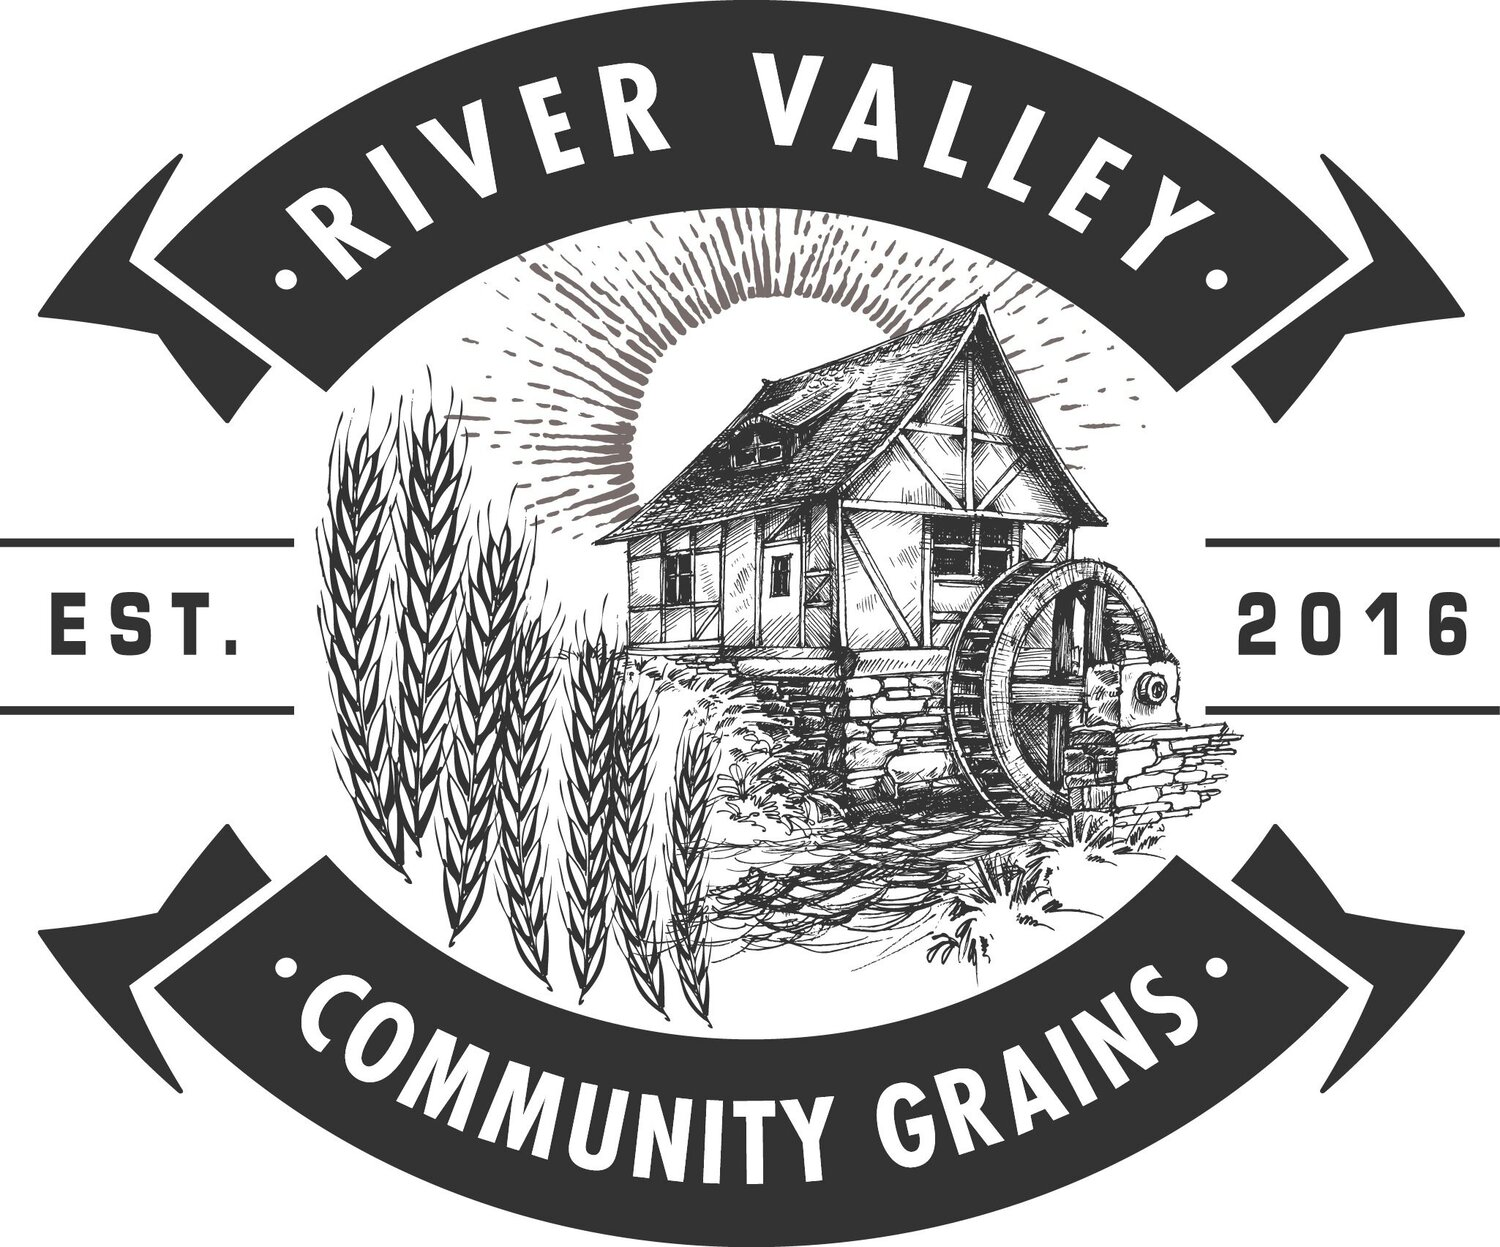 River Valley Community Grains